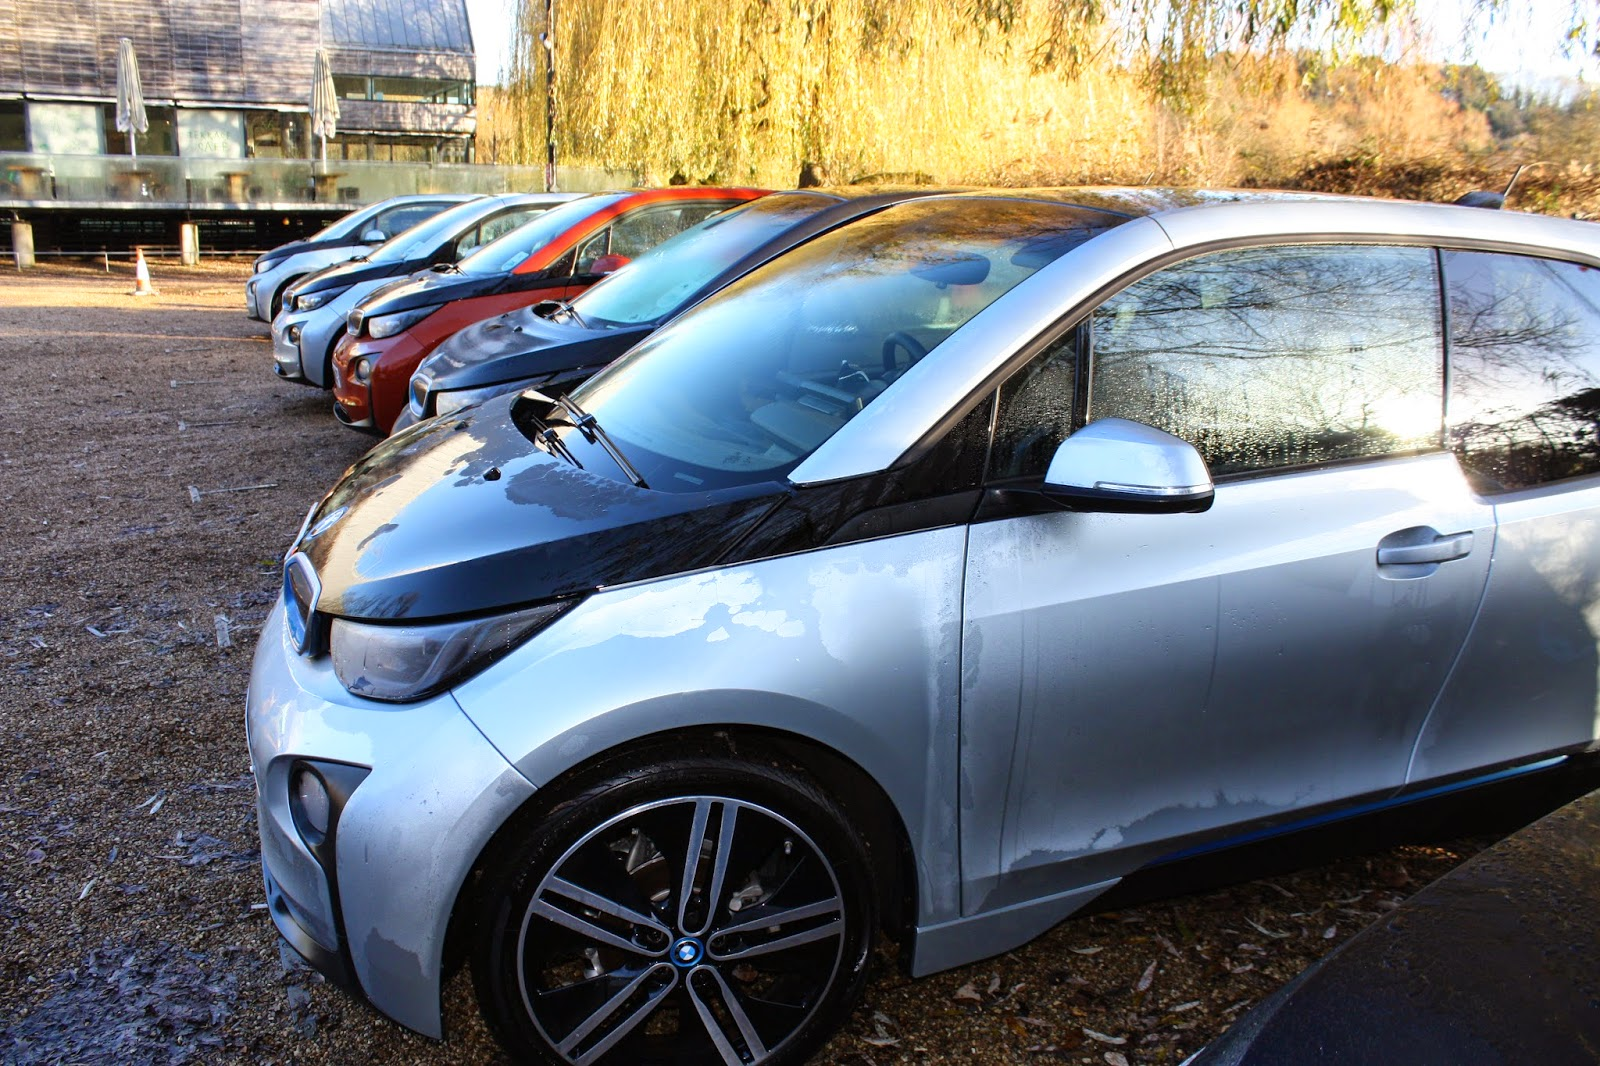 A line of parked BMW i3 electric cars